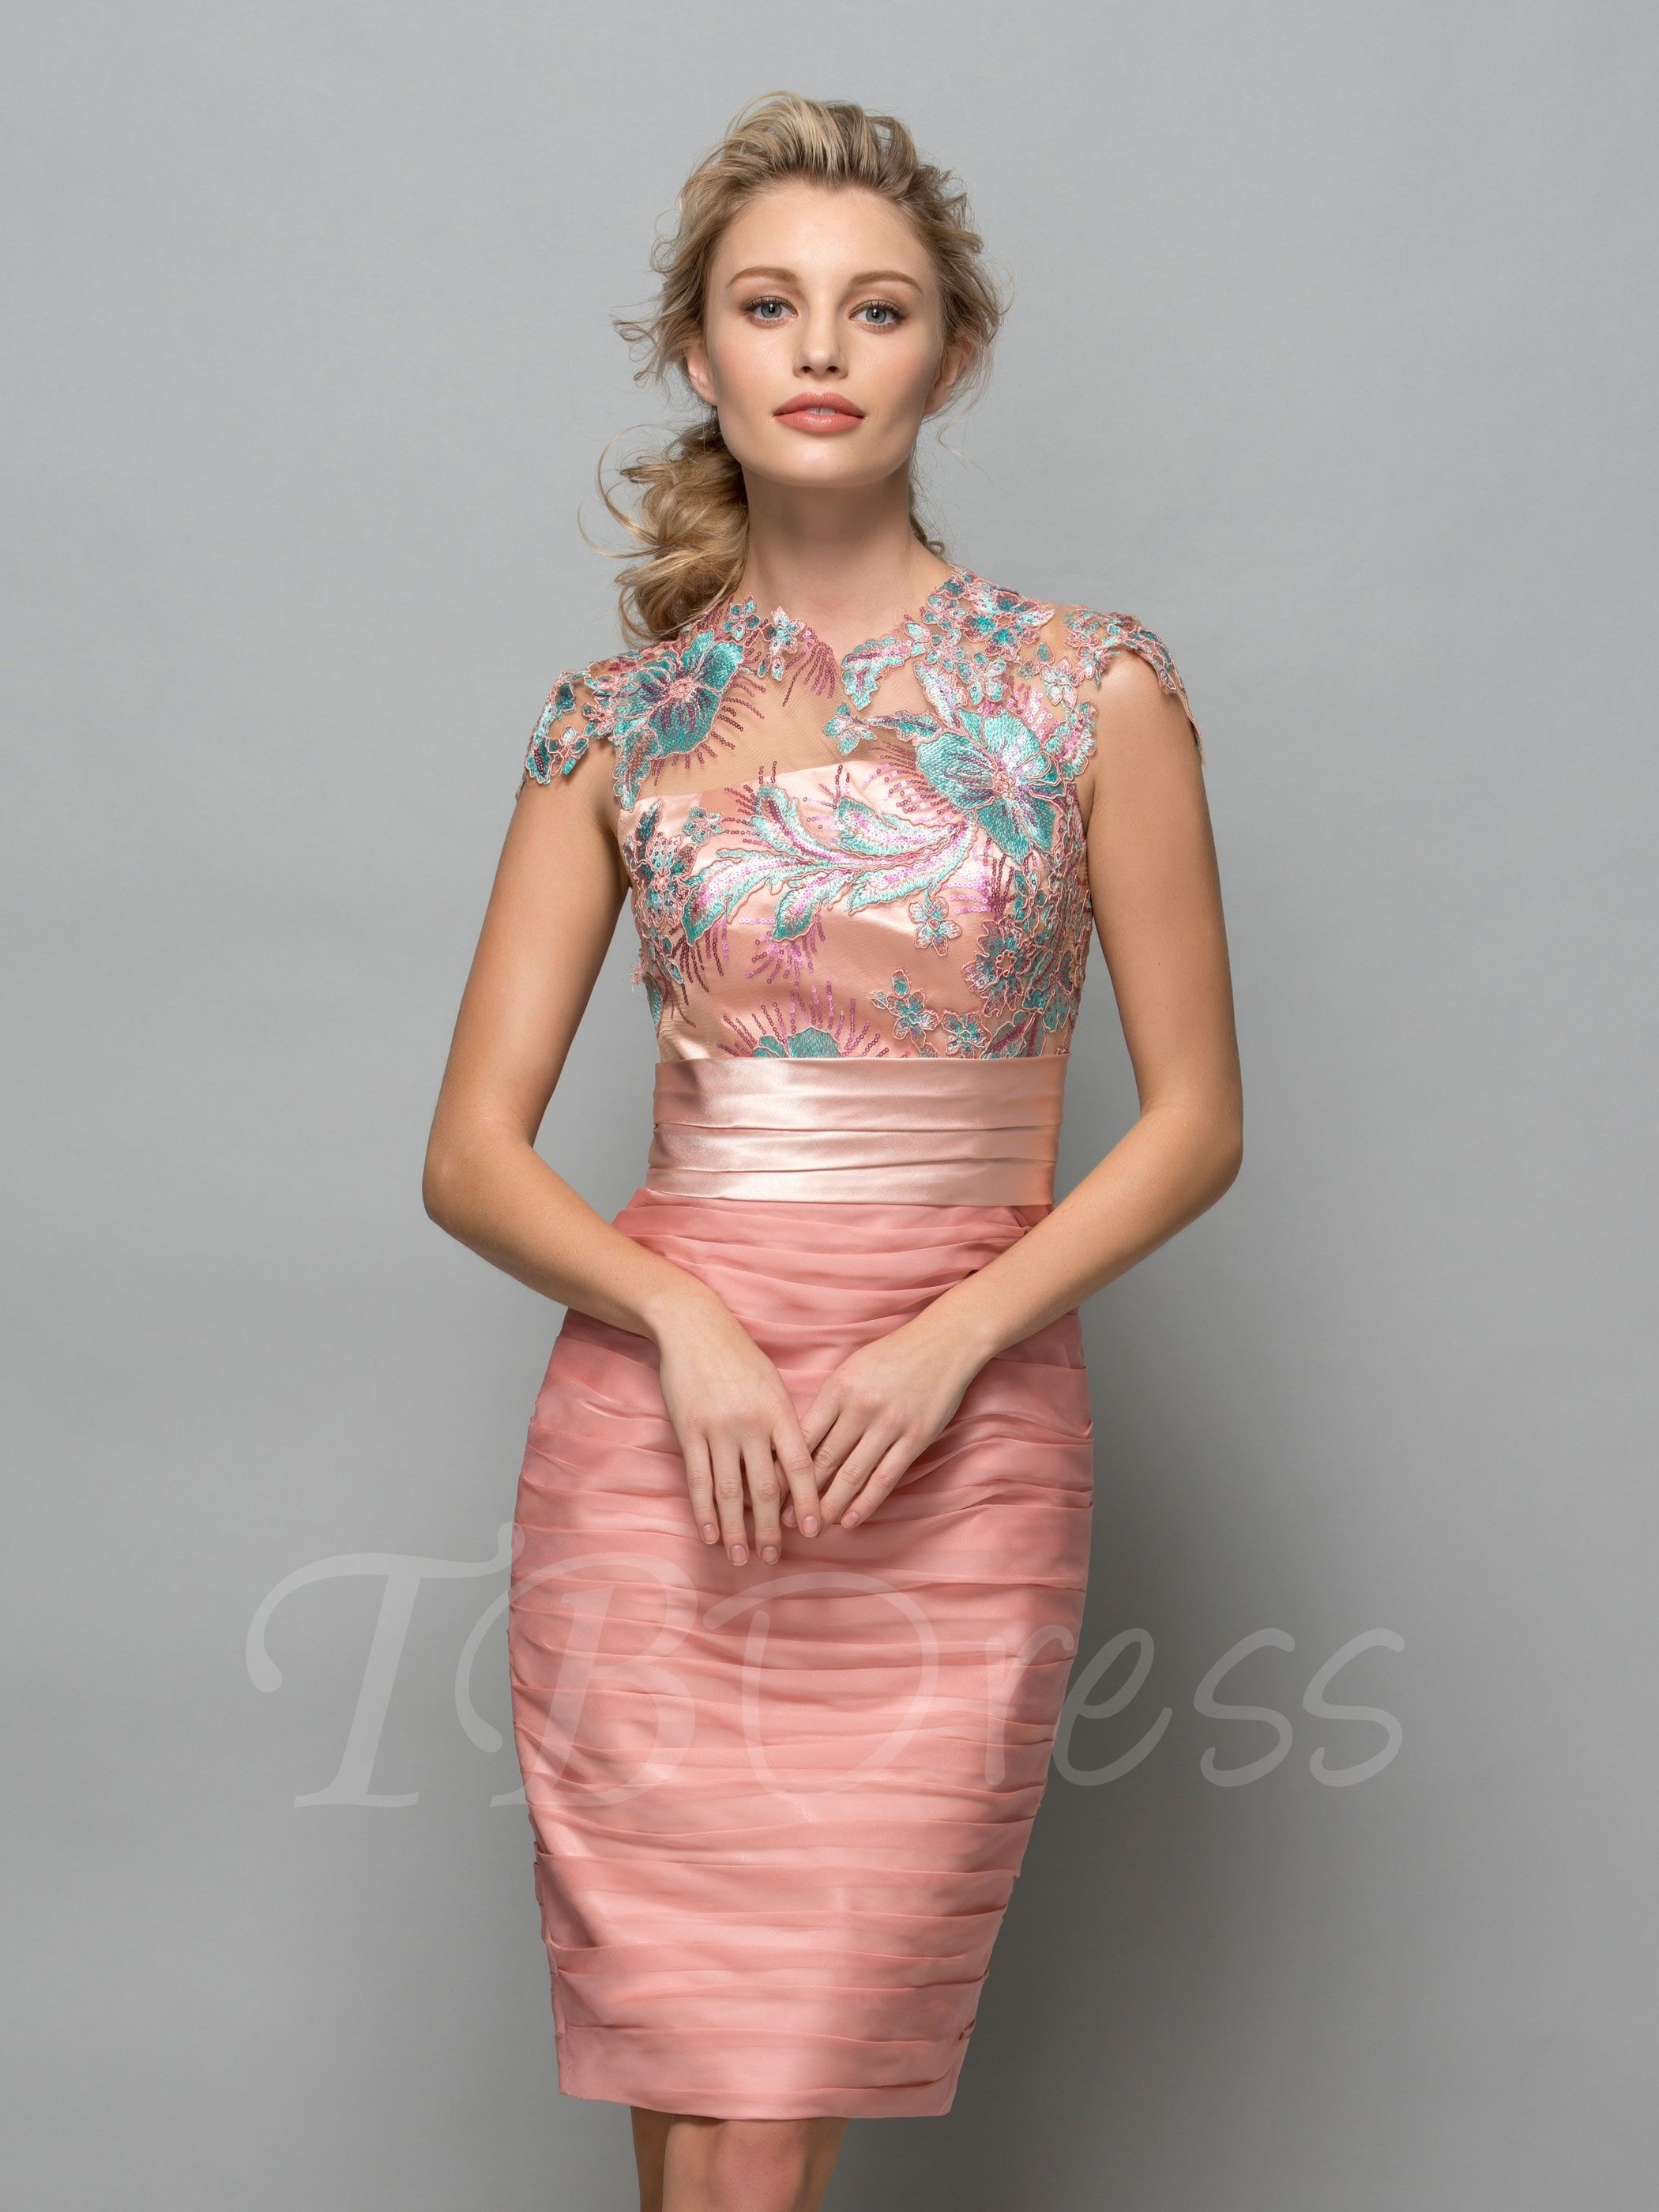 5336d9b209cc7 Tbdress.com offers high quality Cowl Neck Appliques Pleats Short Cocktail  Dress Designer Dresses unit price of $ 102.59.